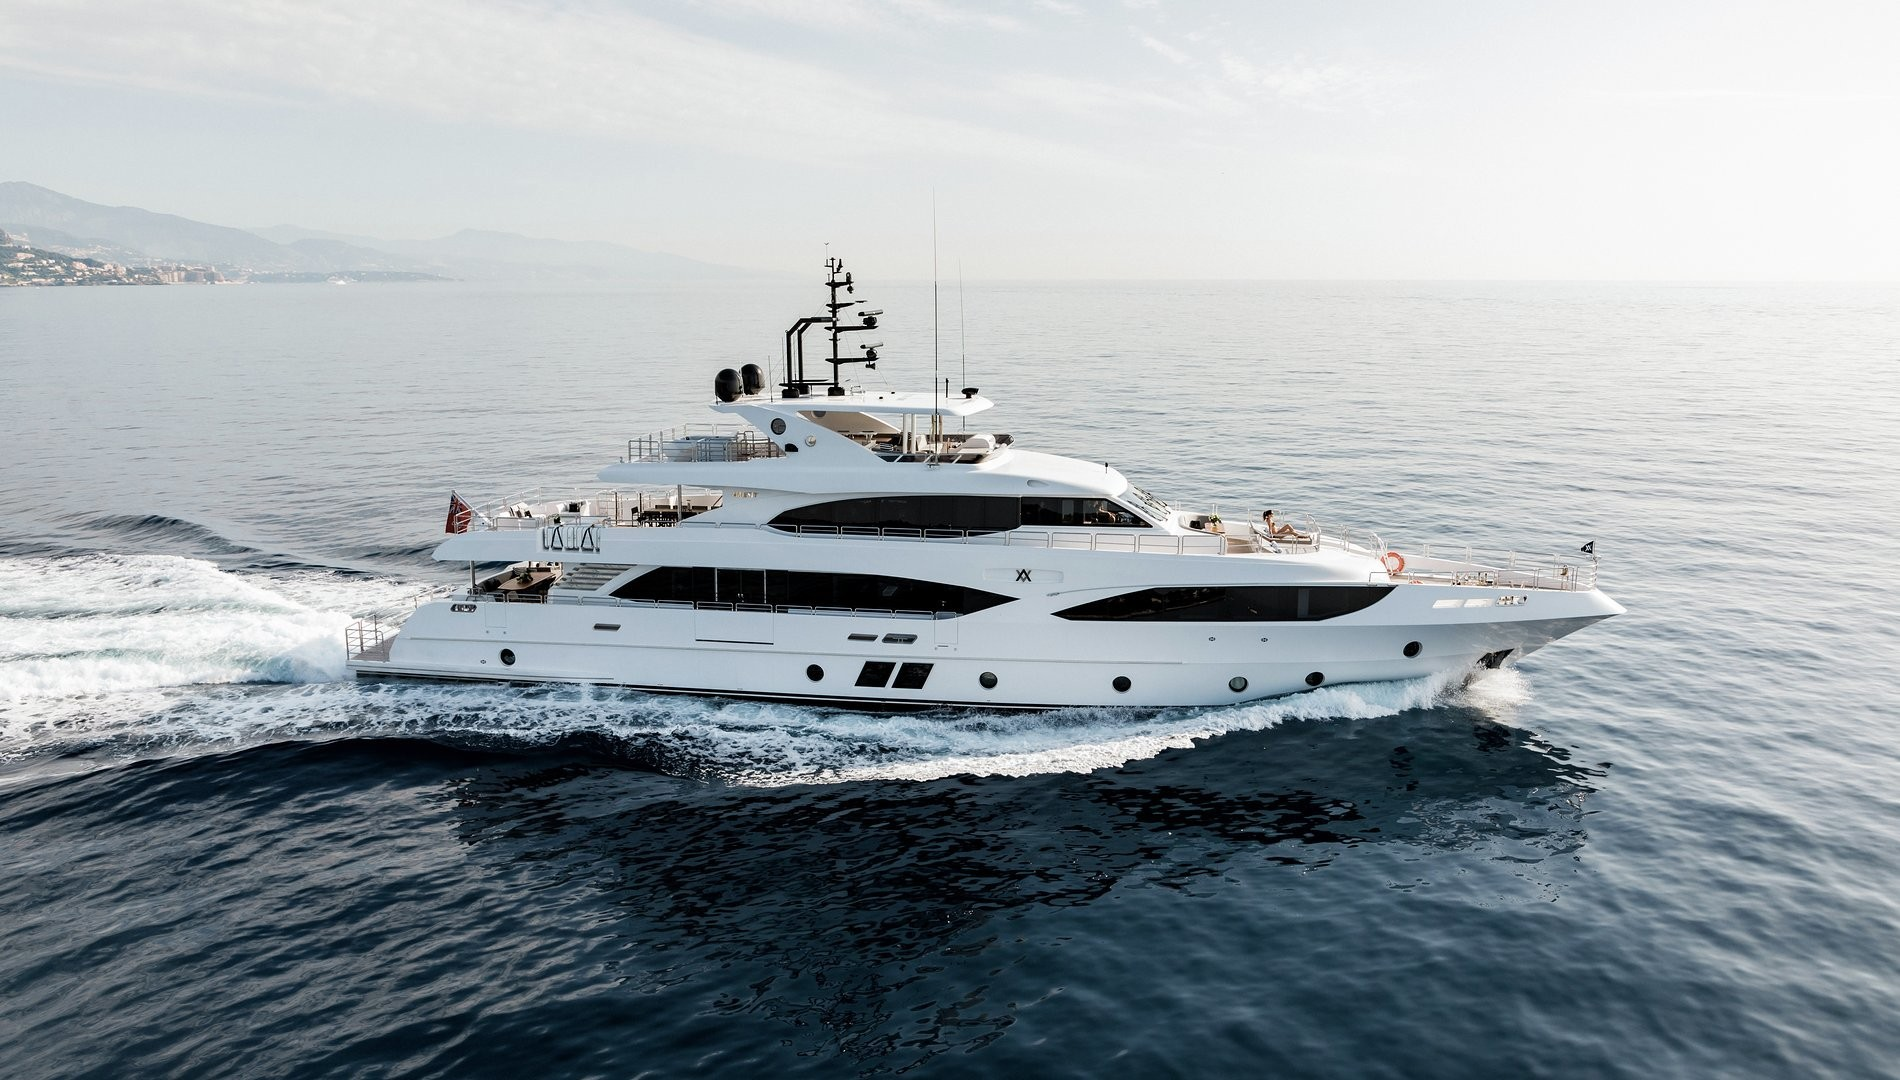 Majesty 125 ALTAVITA de Gulf Craft disponible para chárter este 2021